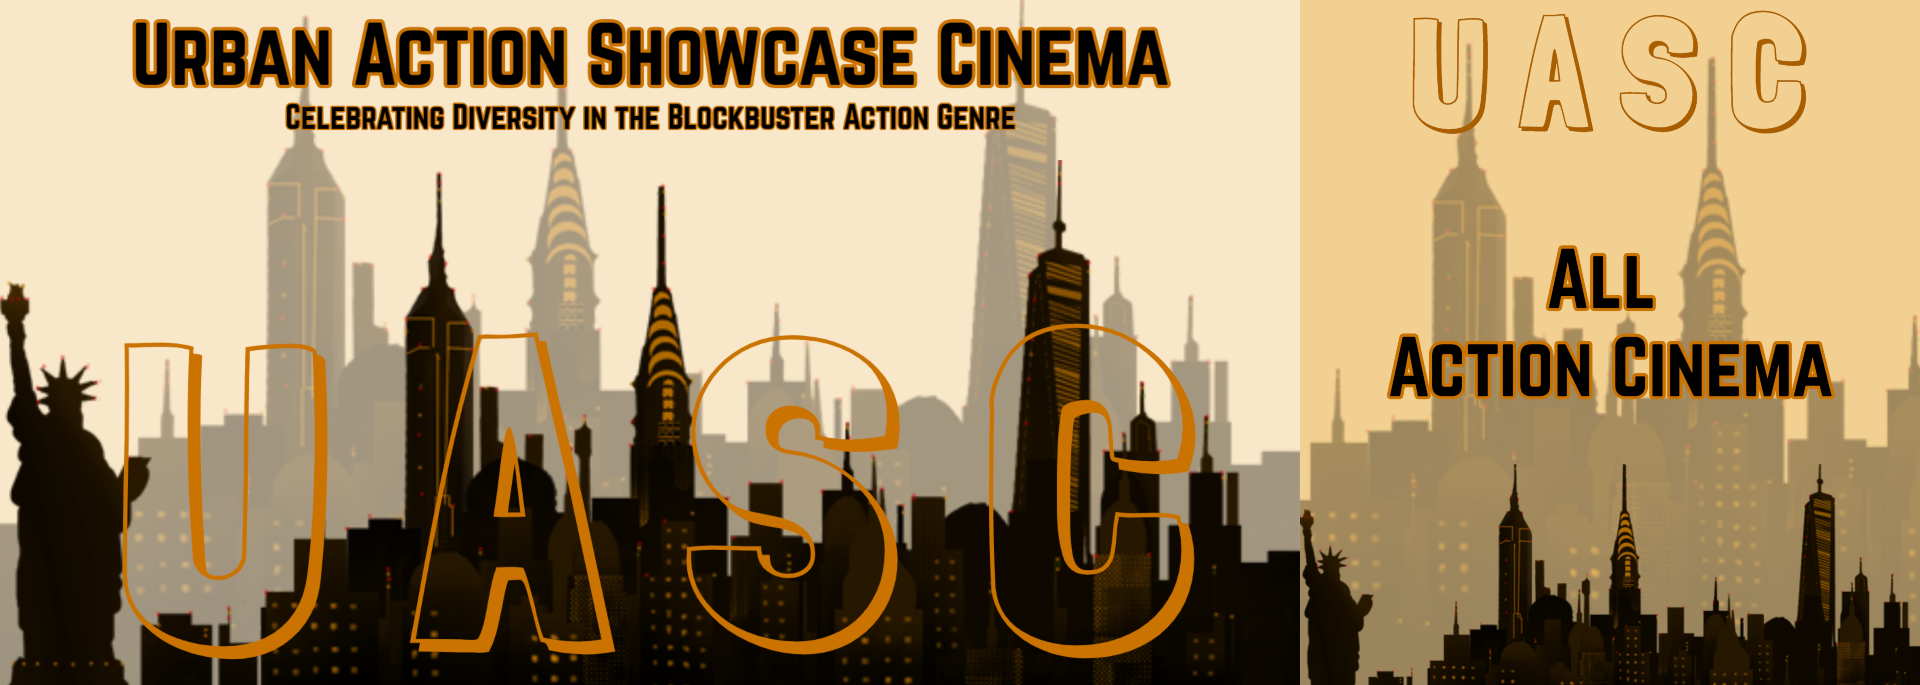 UASC: All Action Cinema